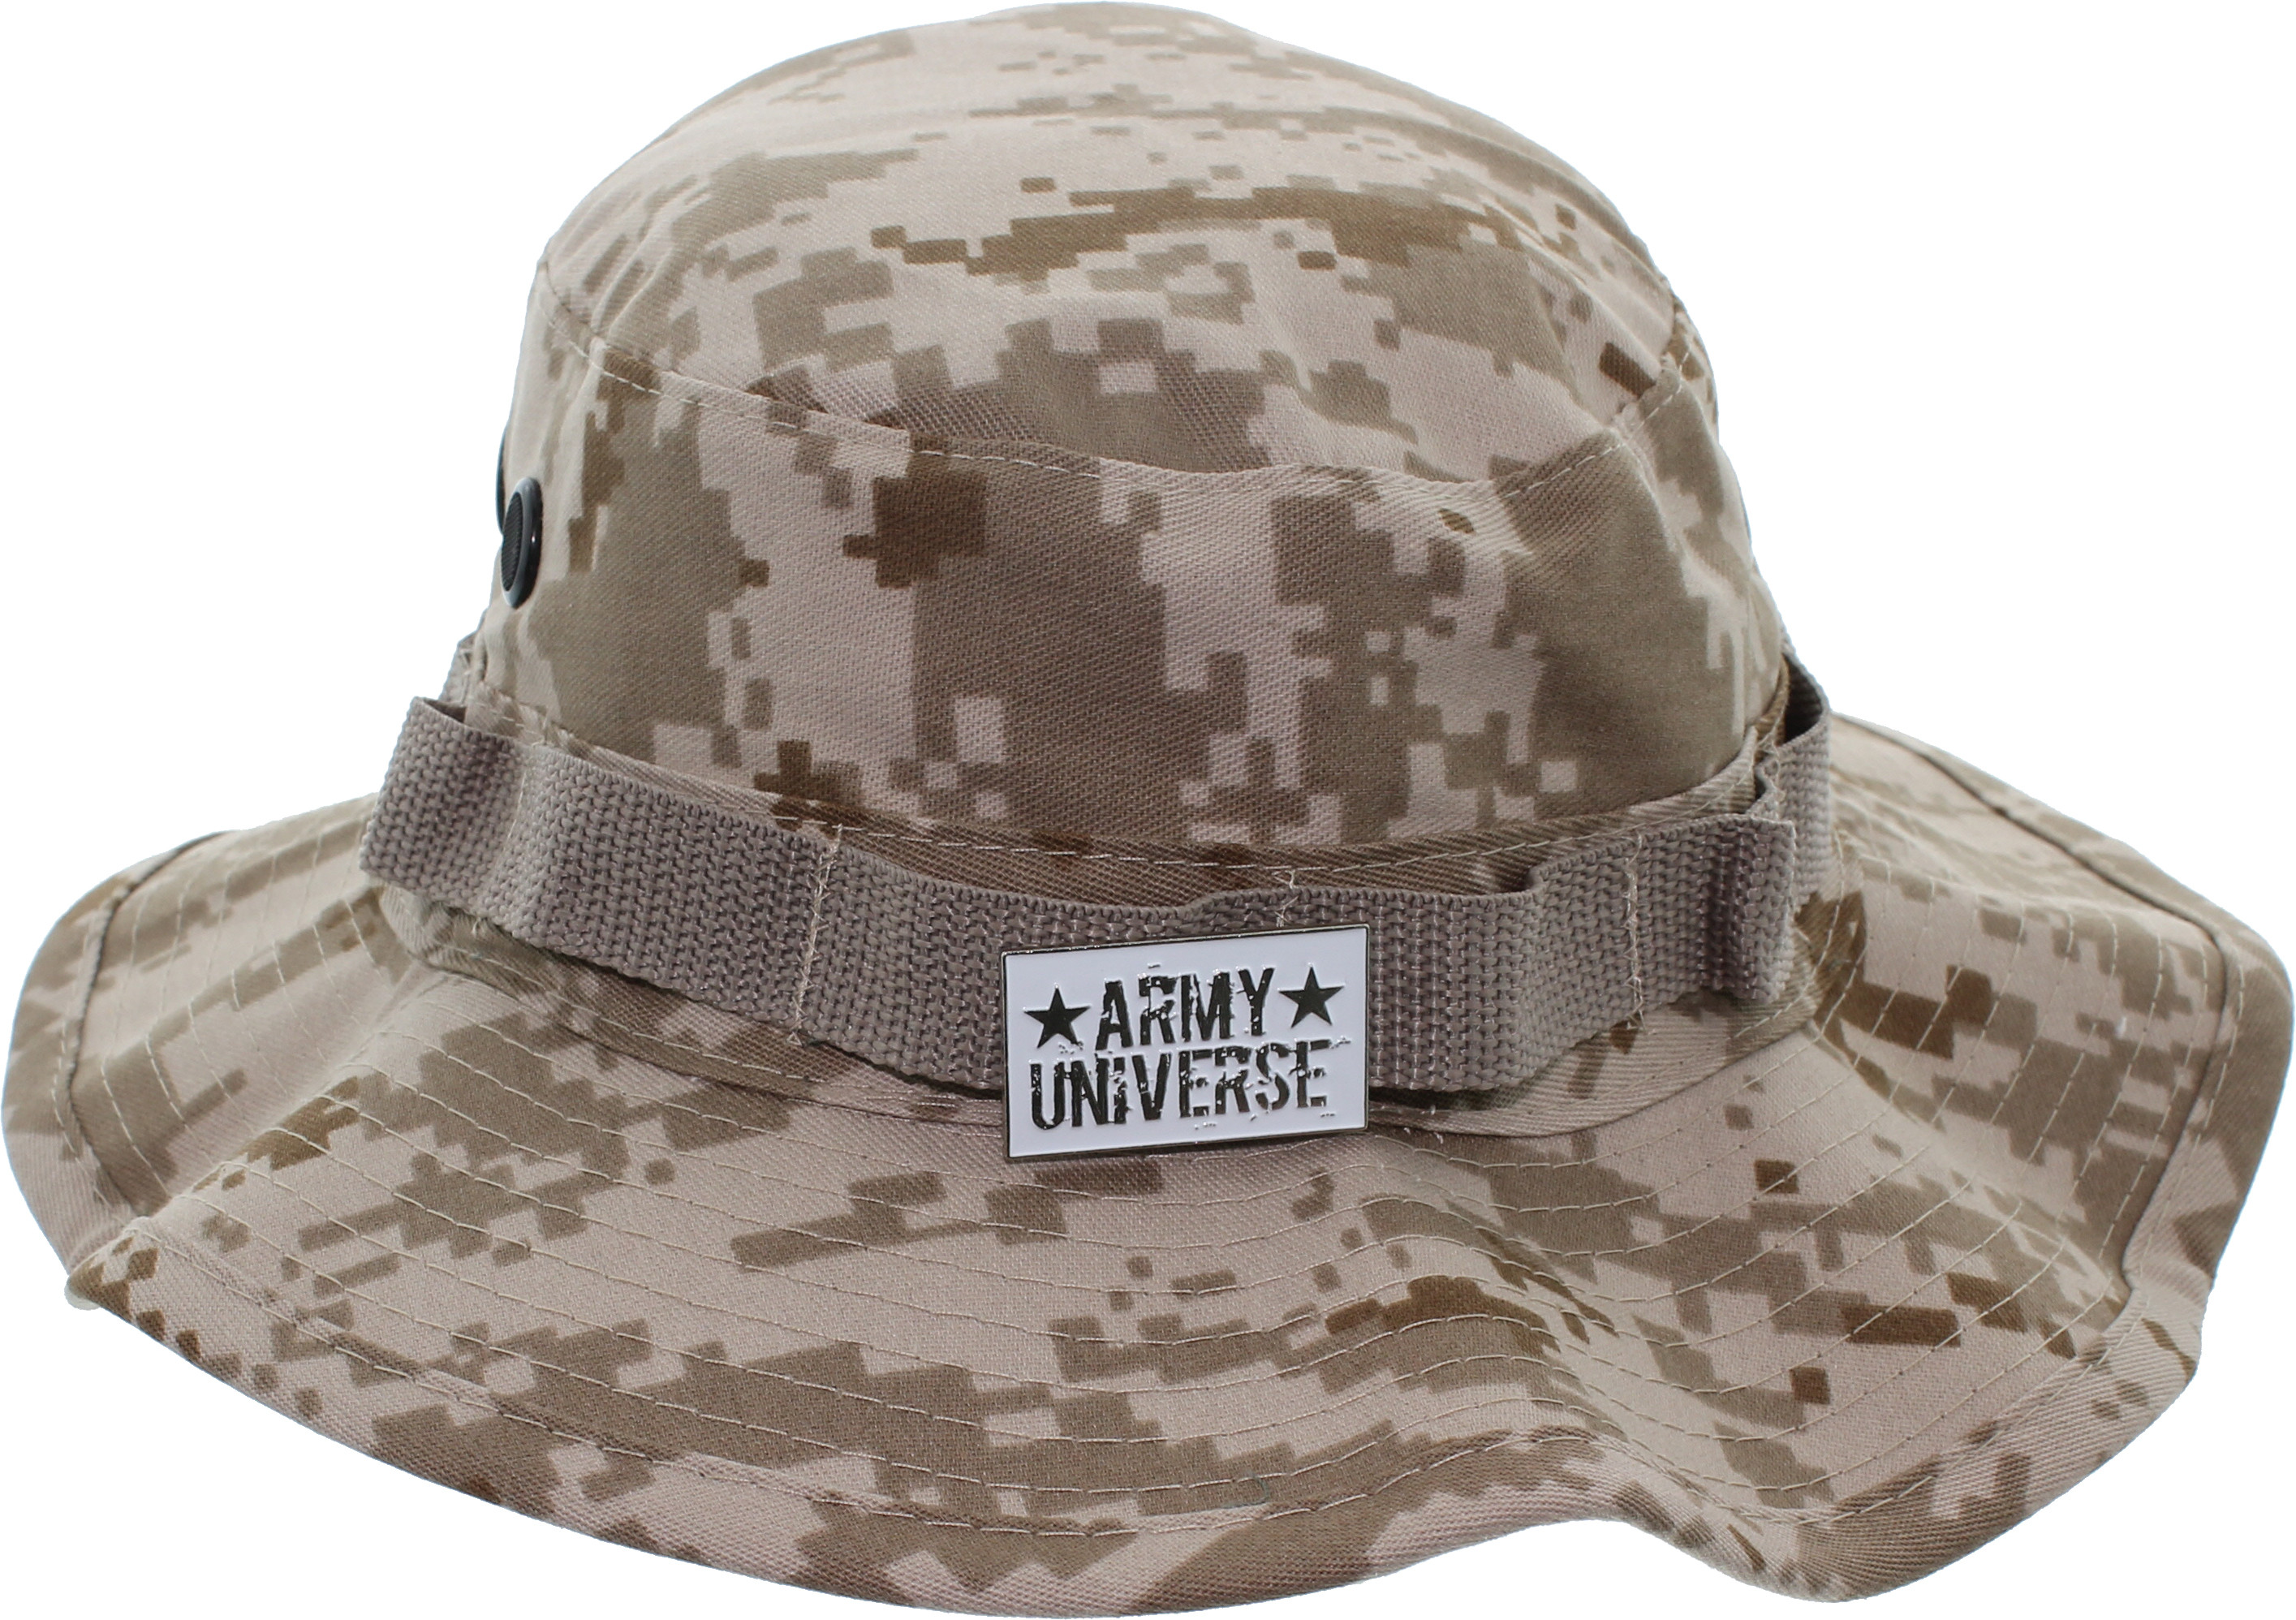 c2655fdfb867b Camouflage Hunting Fishing Wide Brim Boonie Bucket Hat with ARMY ...